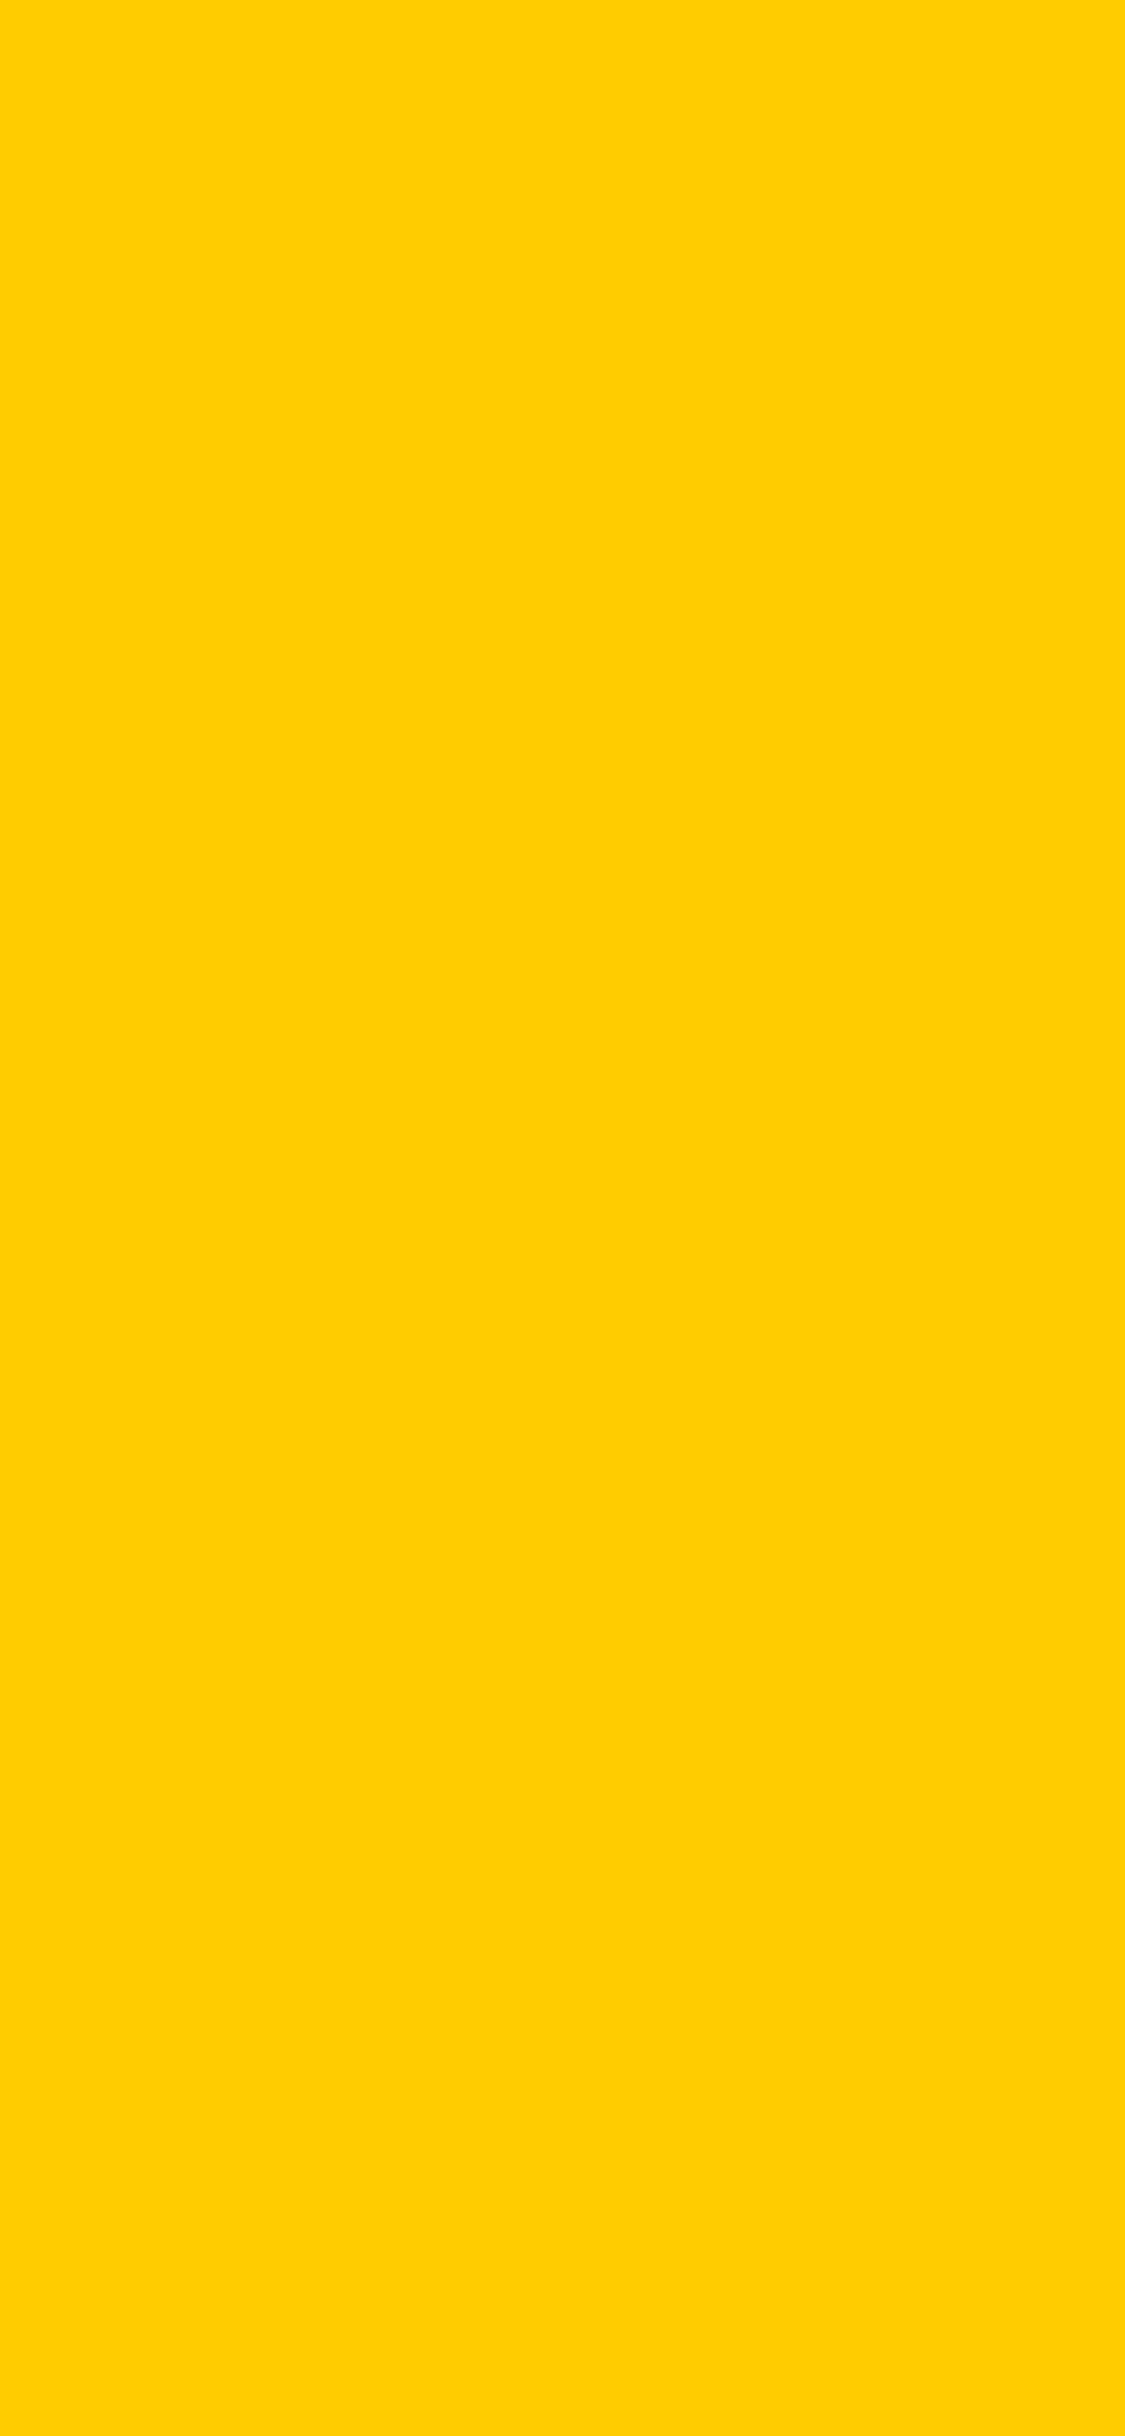 1125x2436 Tangerine Yellow Solid Color Background